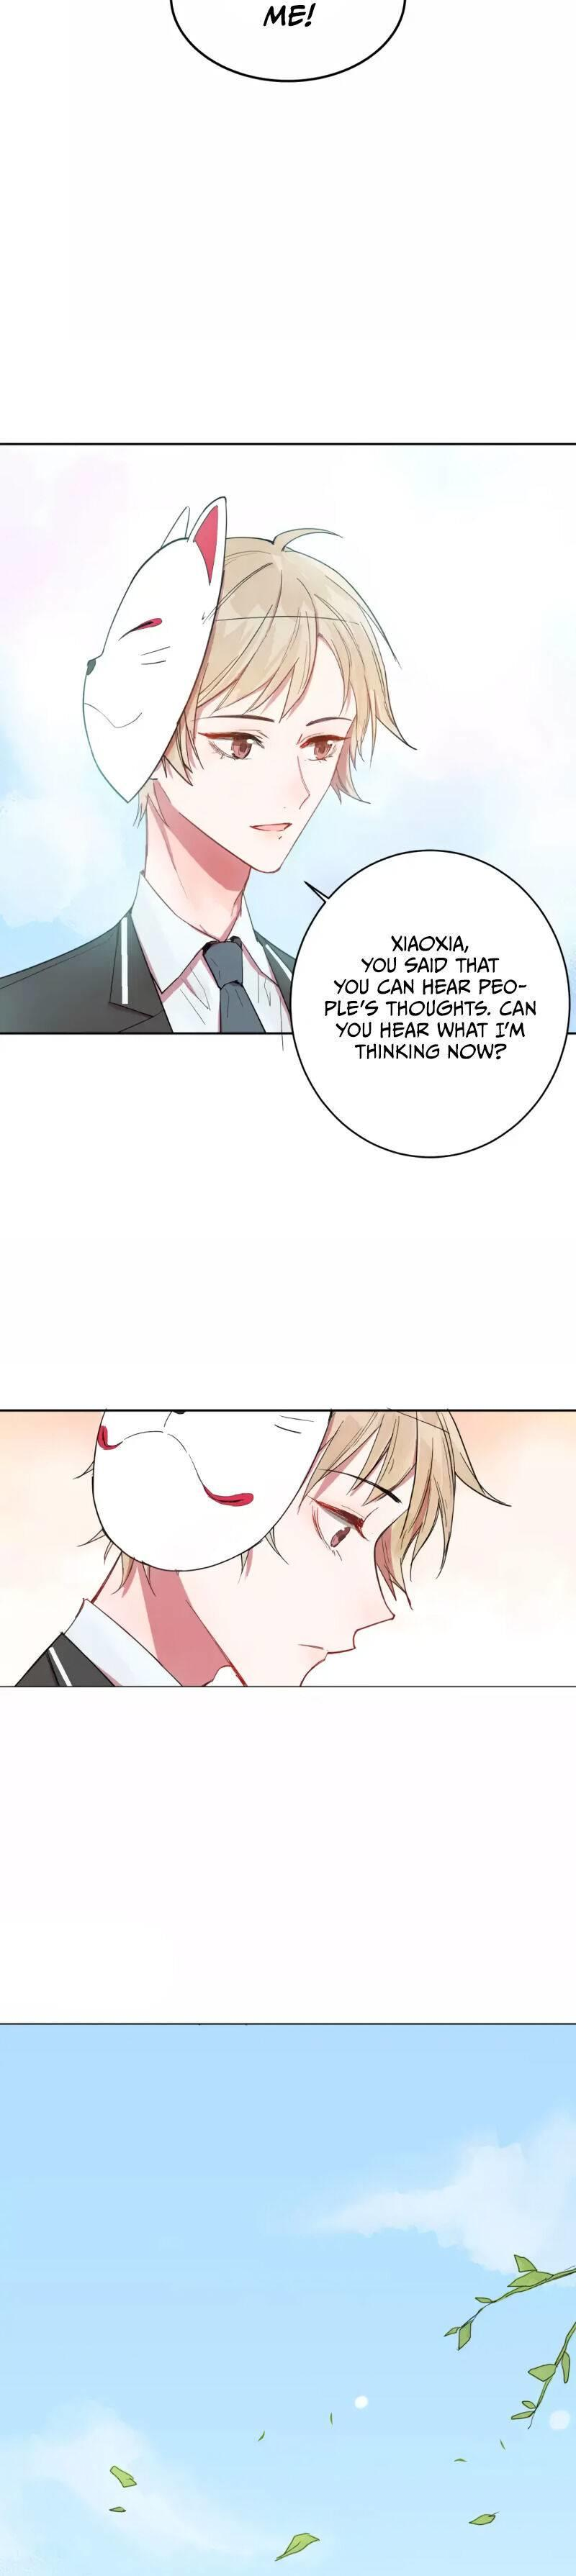 Your Tears Are Sweet Chapter 9 page 11 - Mangakakalots.com